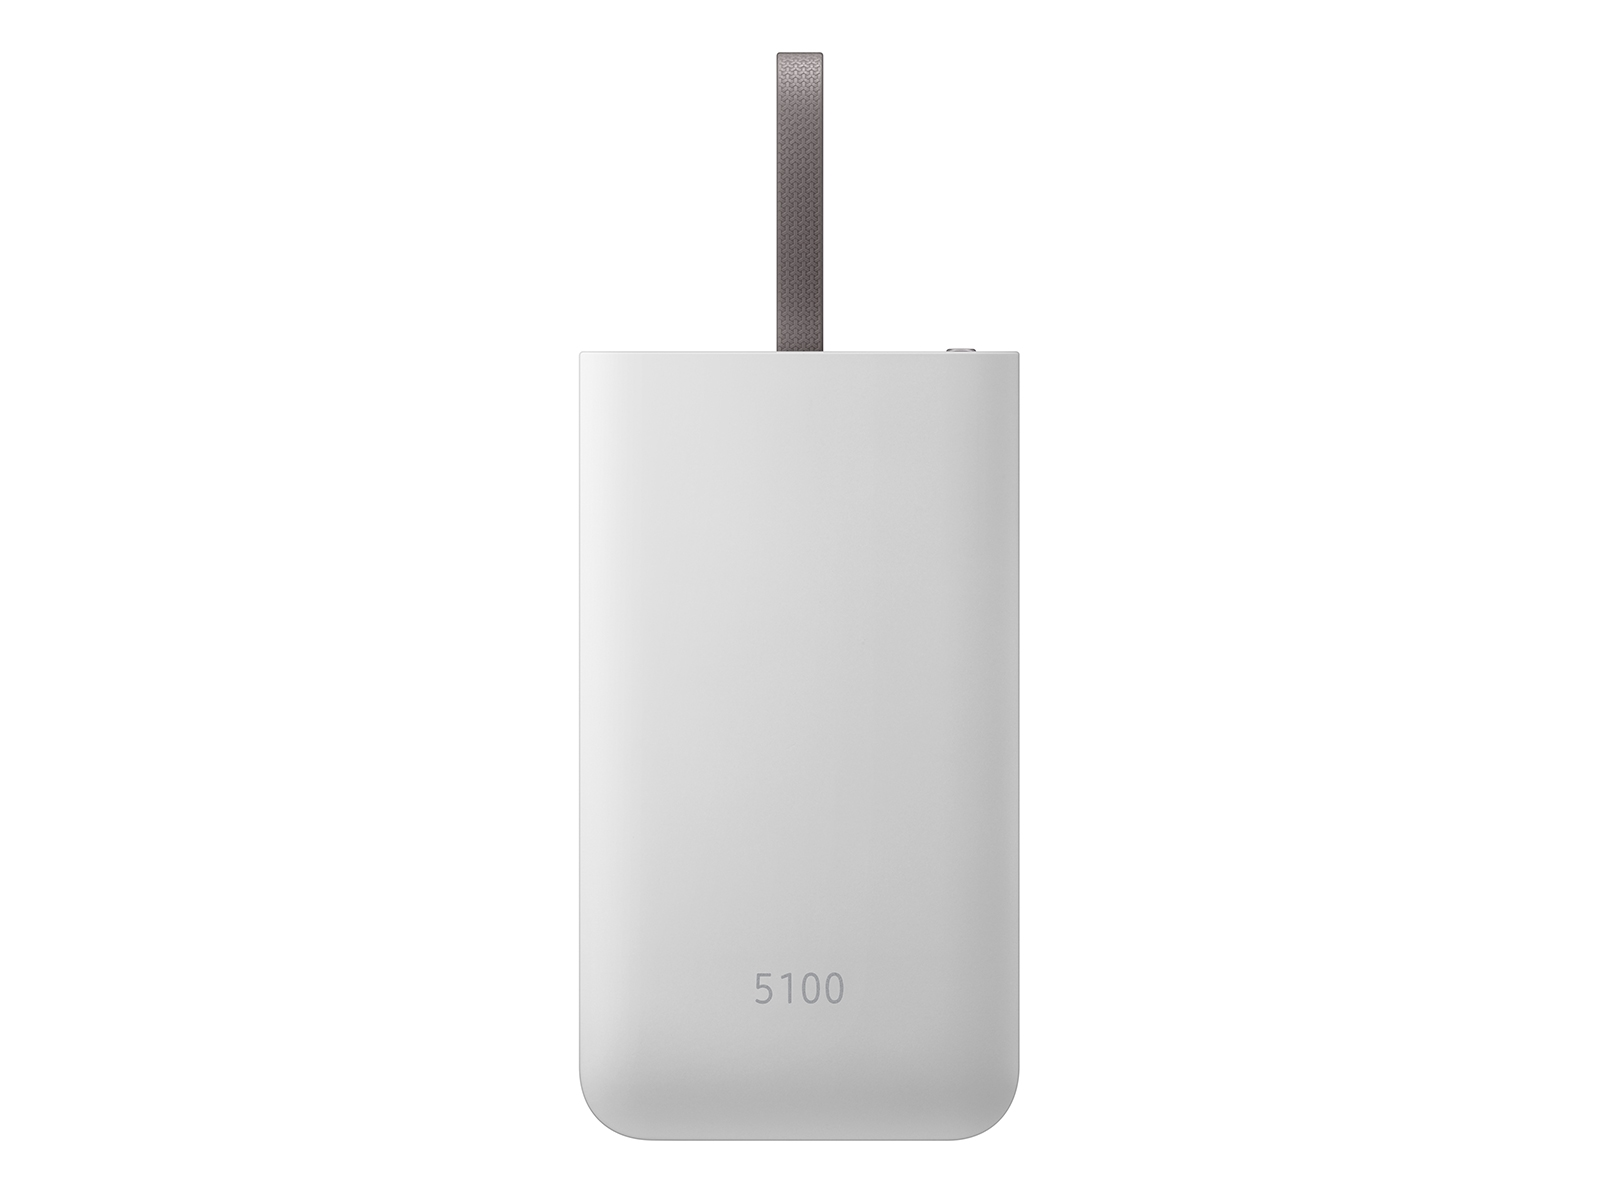 5100 mAH Fast Charge Portable Battery Pack, Silver